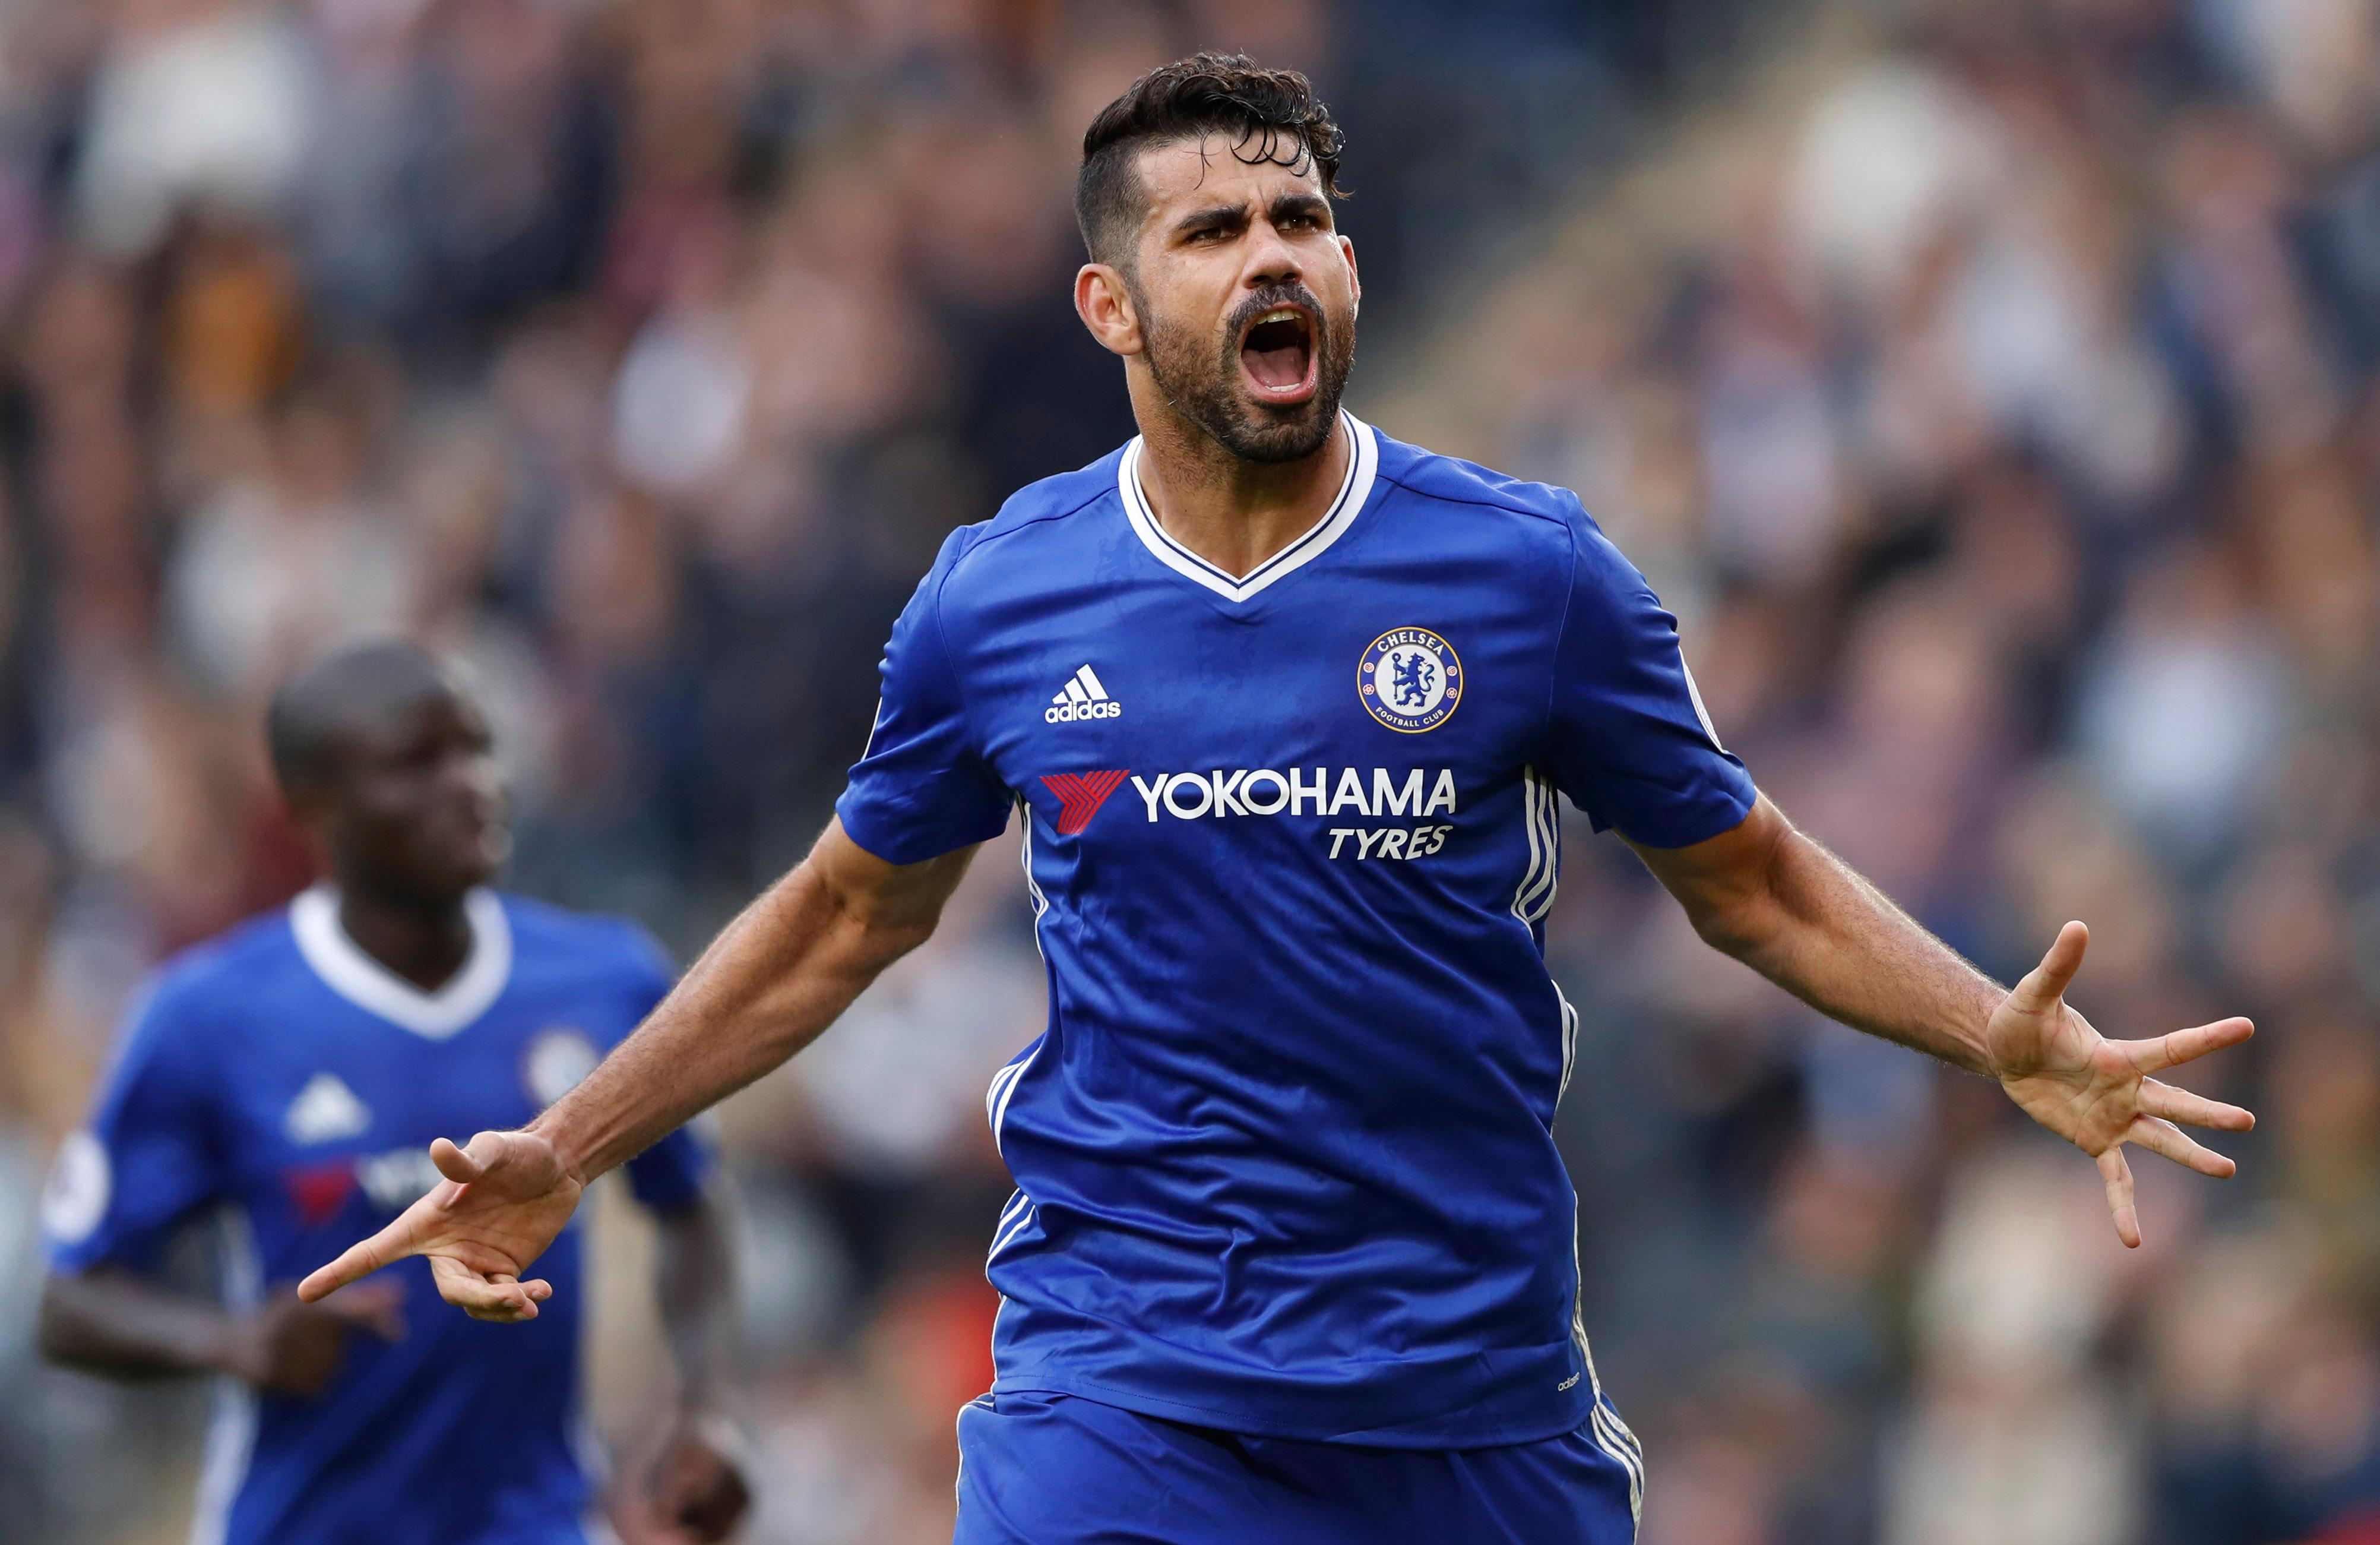 EA SPORTS Player of the Month shortlist Costa